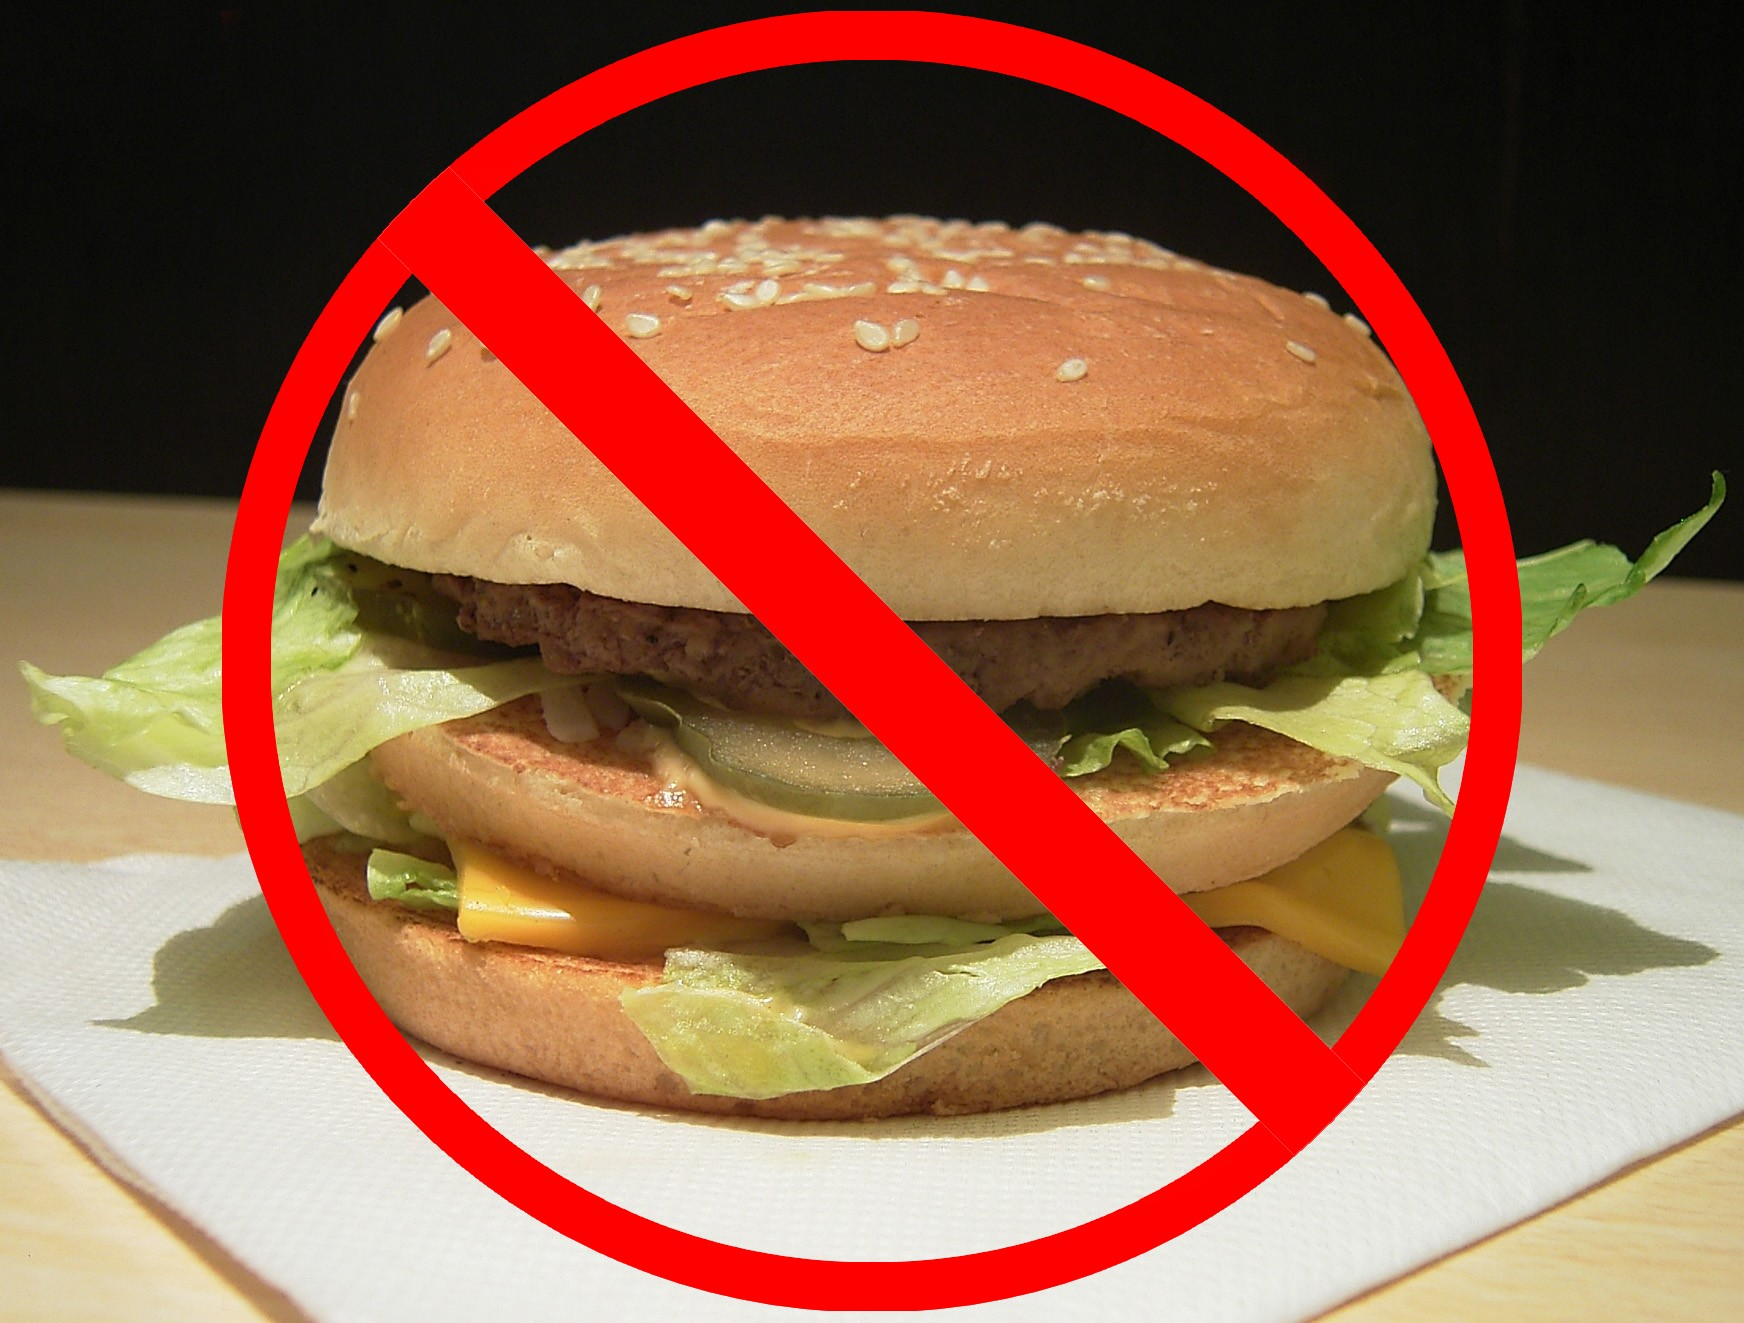 photo of hamburger under red crossed-out symbol